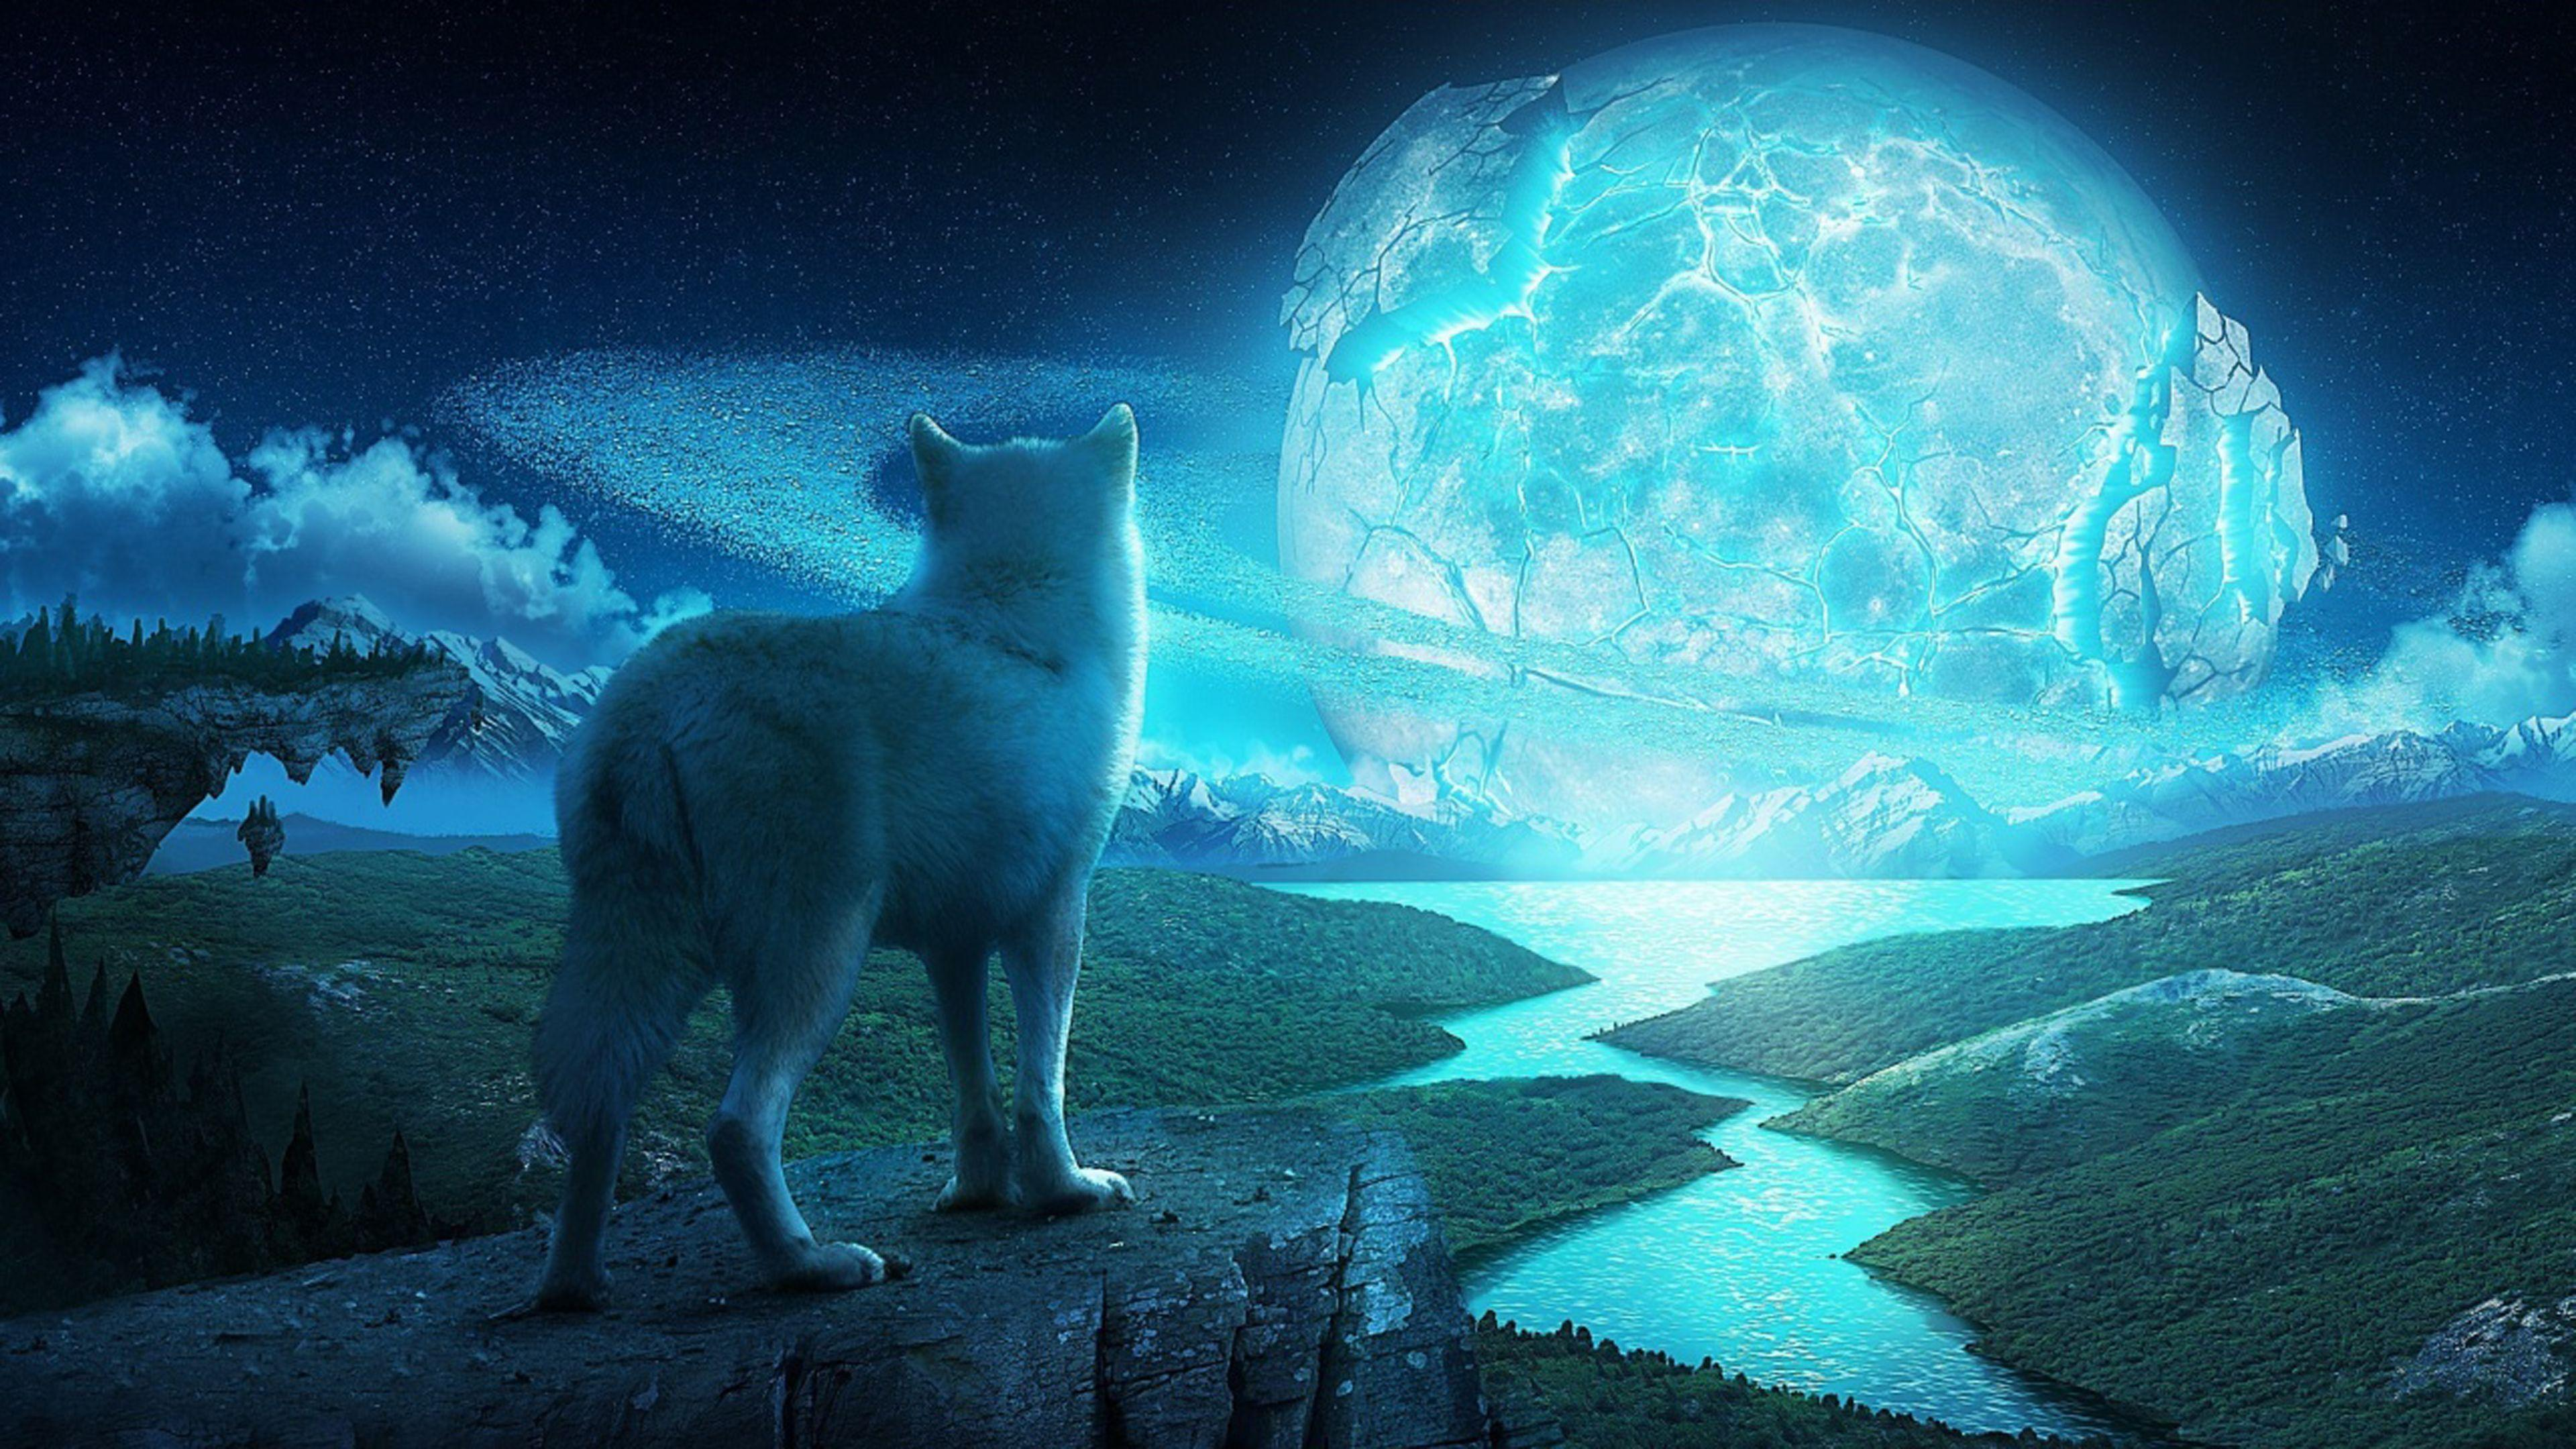 Wolf in a fantasy world Ultra HD 4K Wallpapers